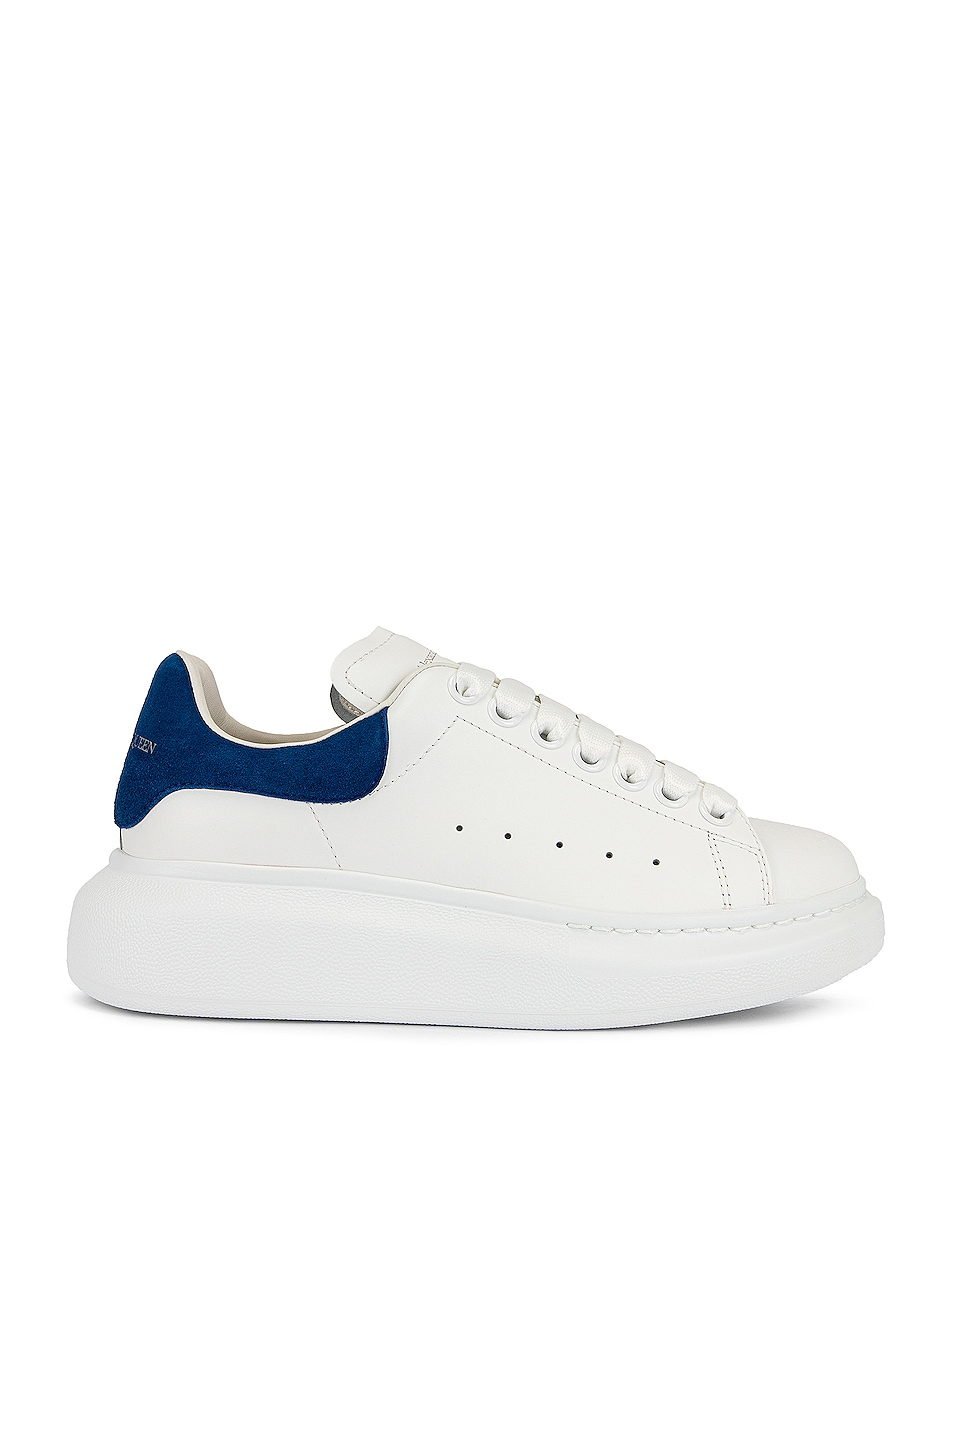 Image 1 of Alexander McQueen Leather Platform Sneakers in White & Blue